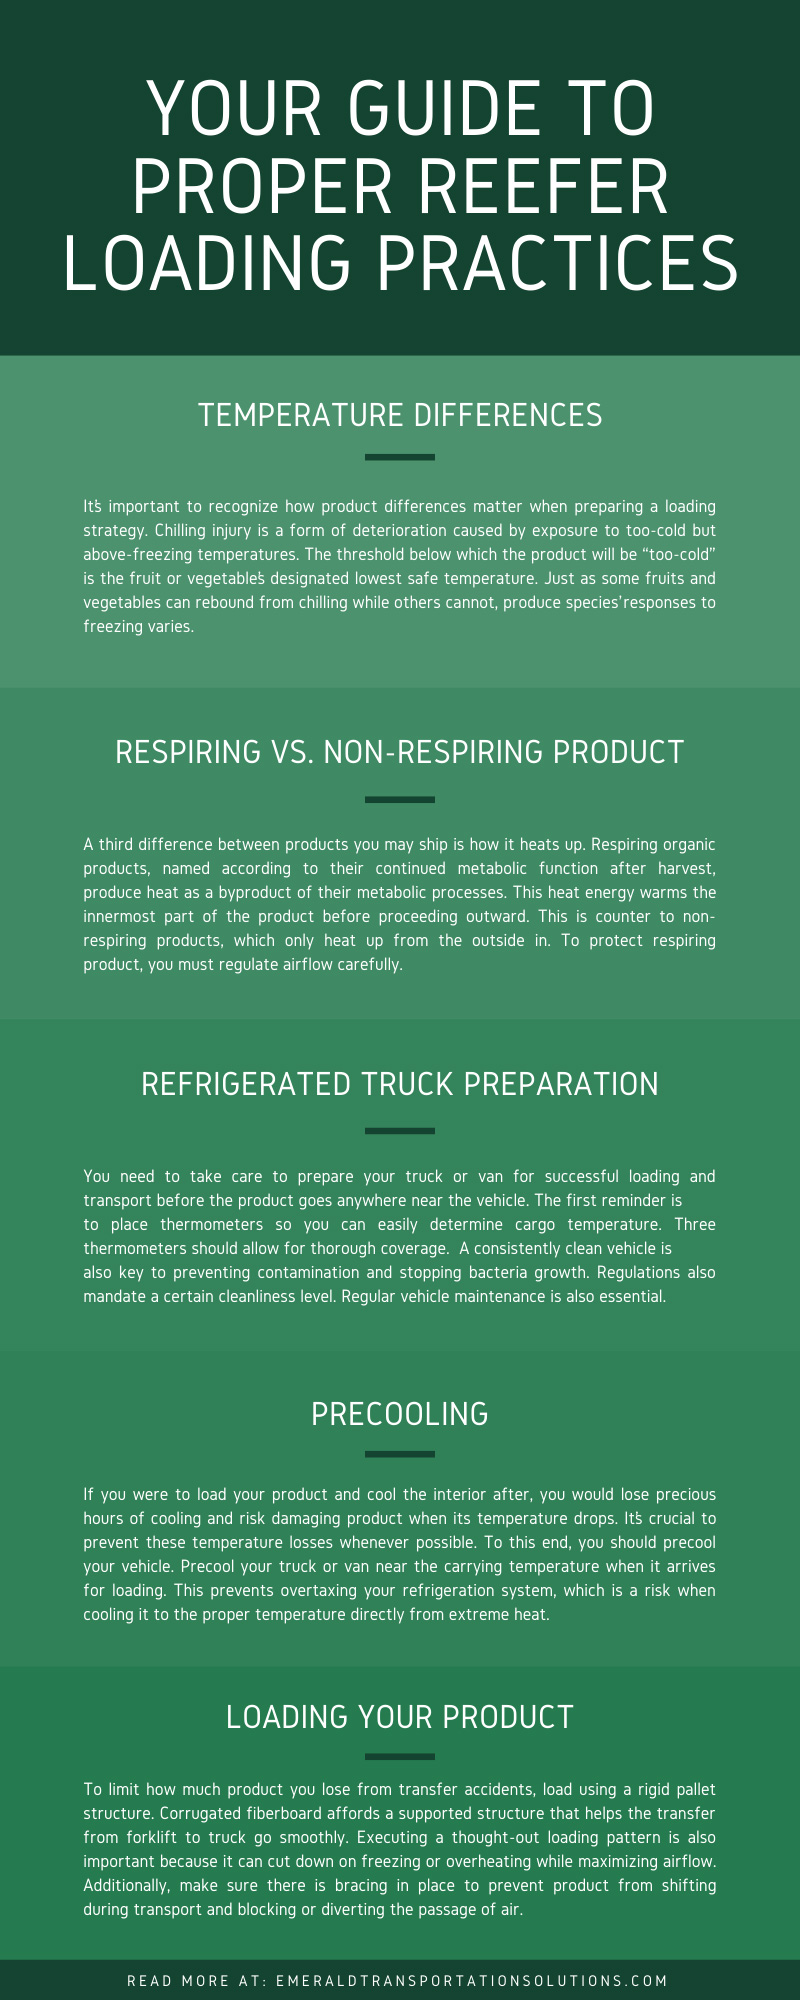 Your Guide to Proper Reefer Loading Practices